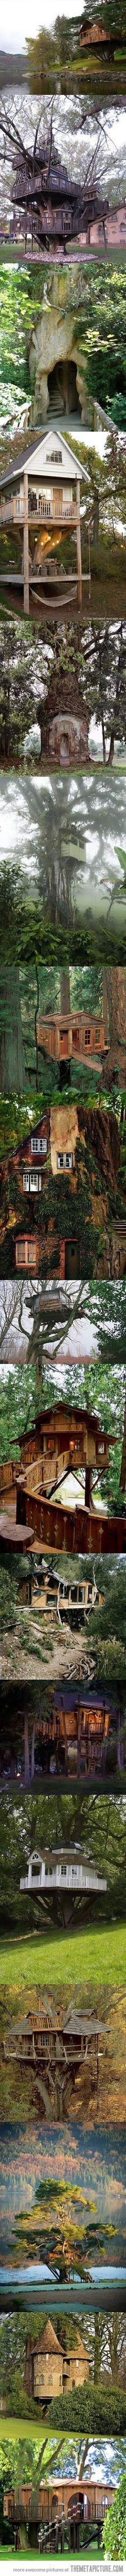 Now these are tree houses.